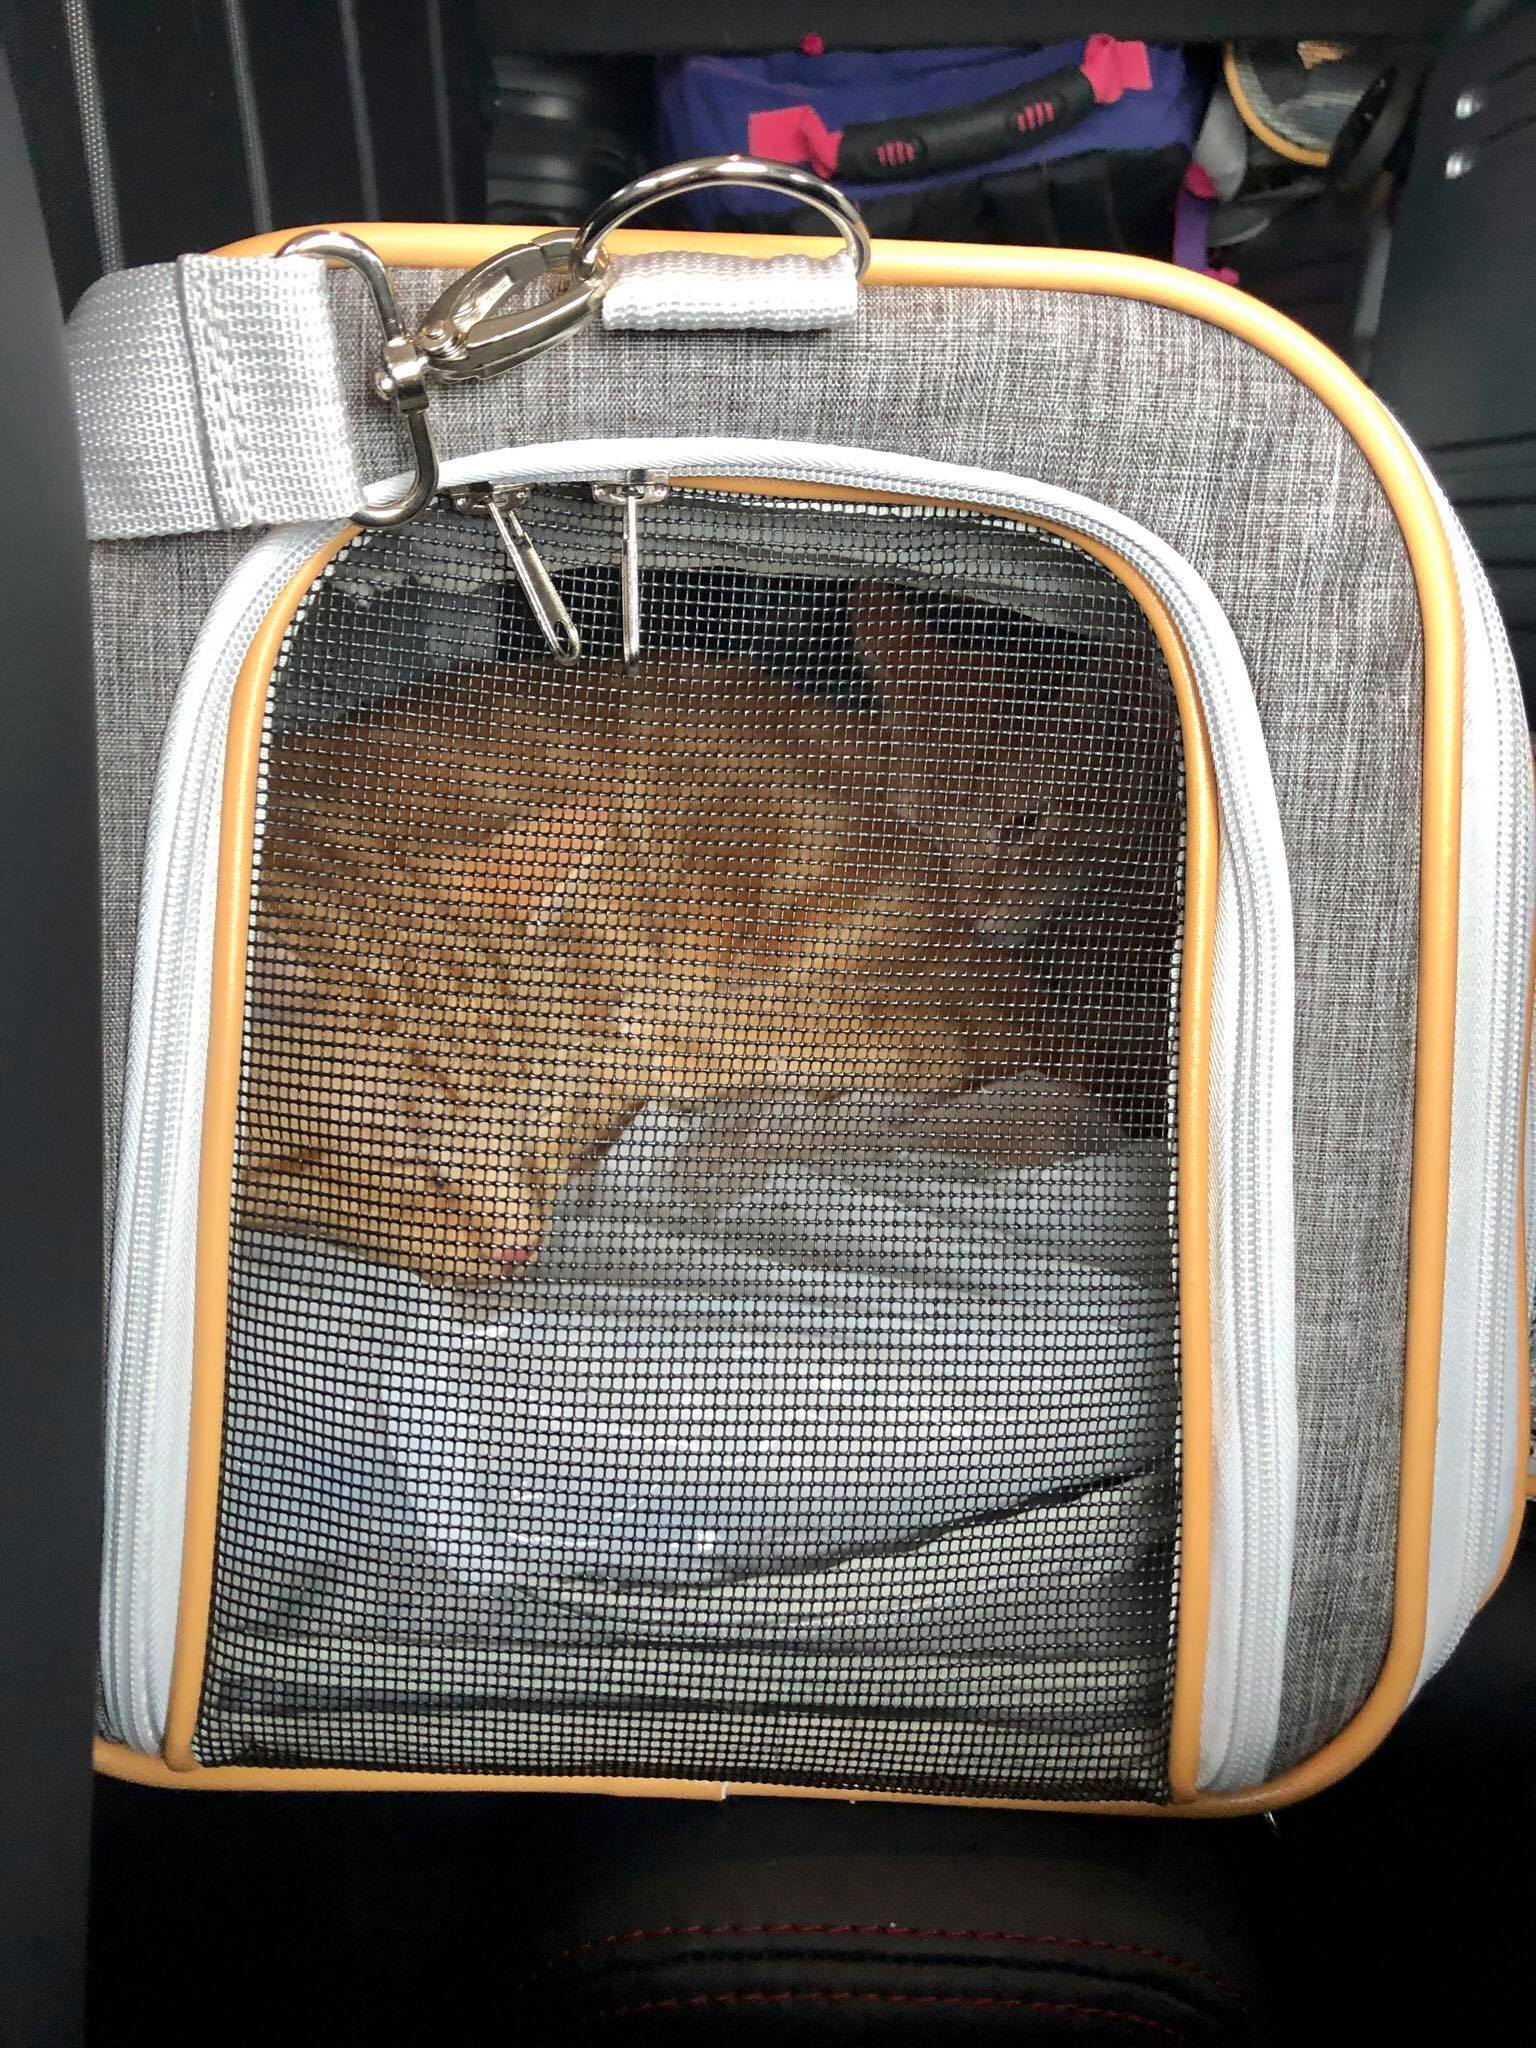 Traveling with Cats on an Airplane Cabin - Useful Tips for Safe & Relaxing  Air Travel Experience with your Pets3.jpg